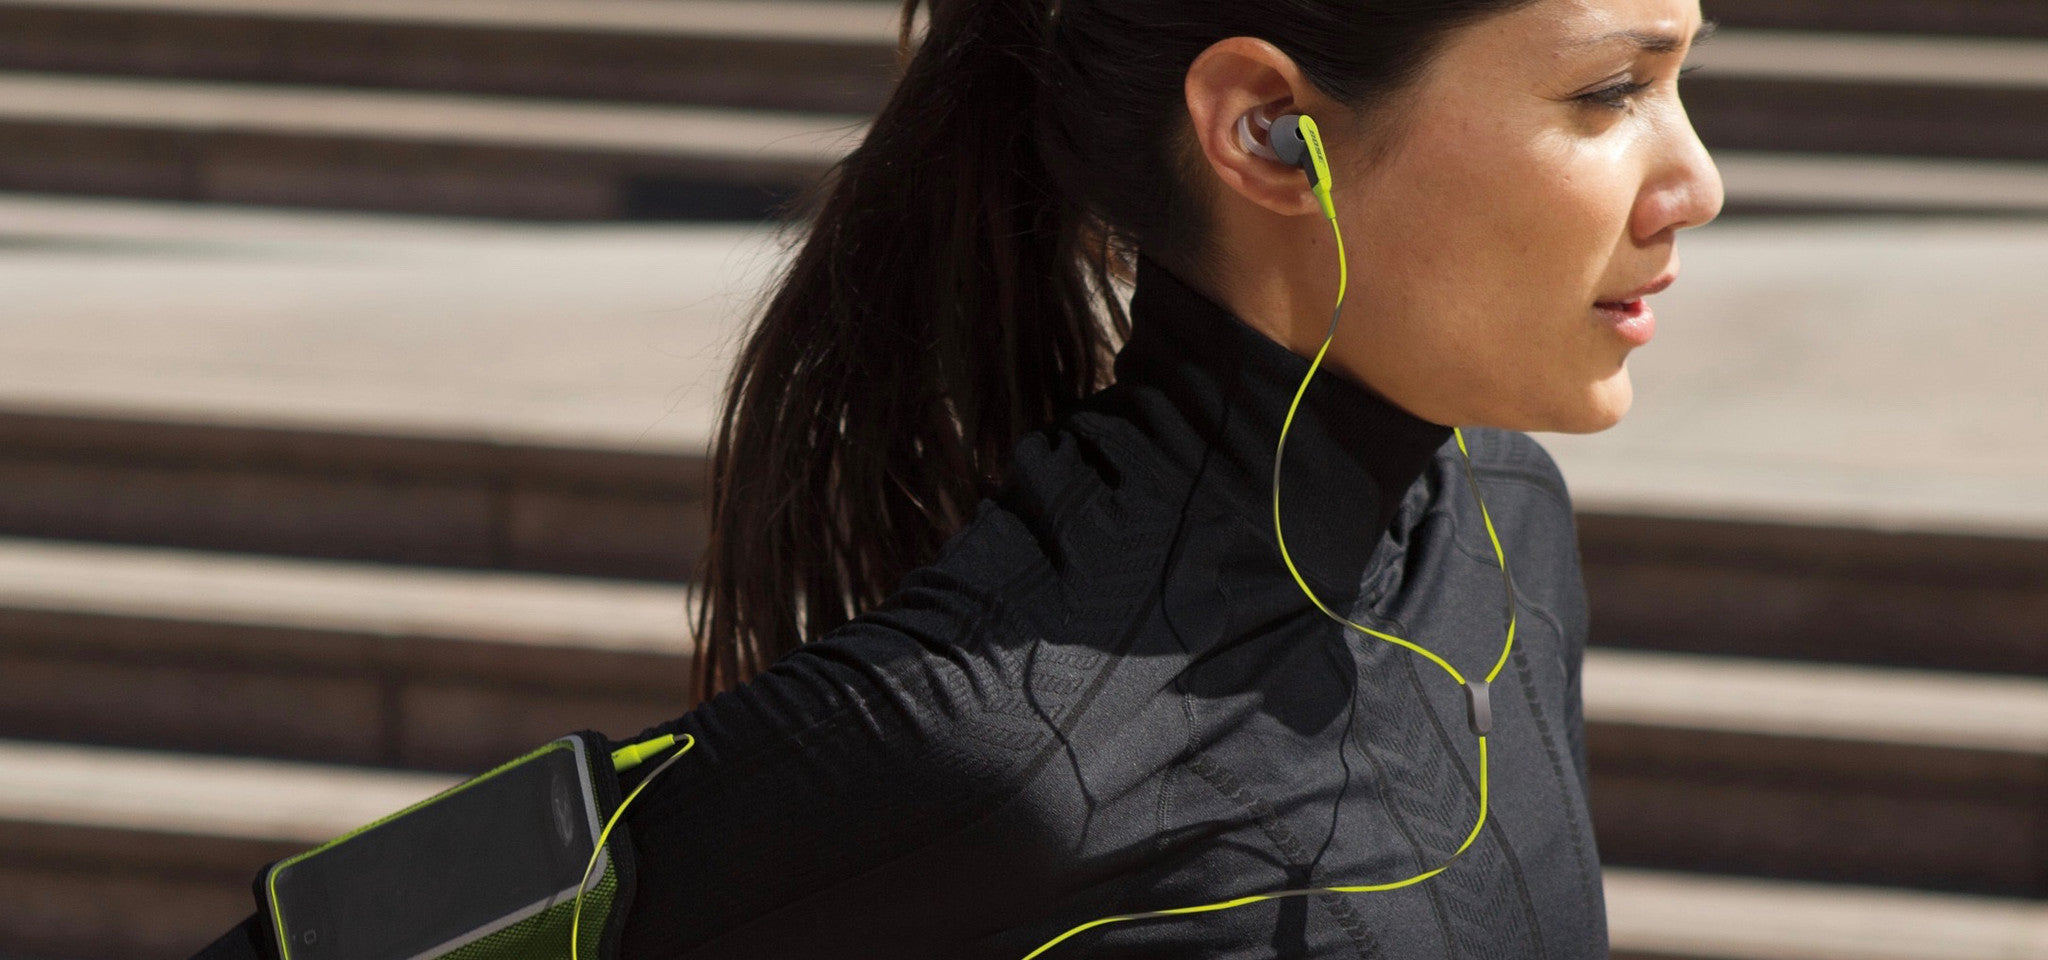 The Perfected Workout Playlist!